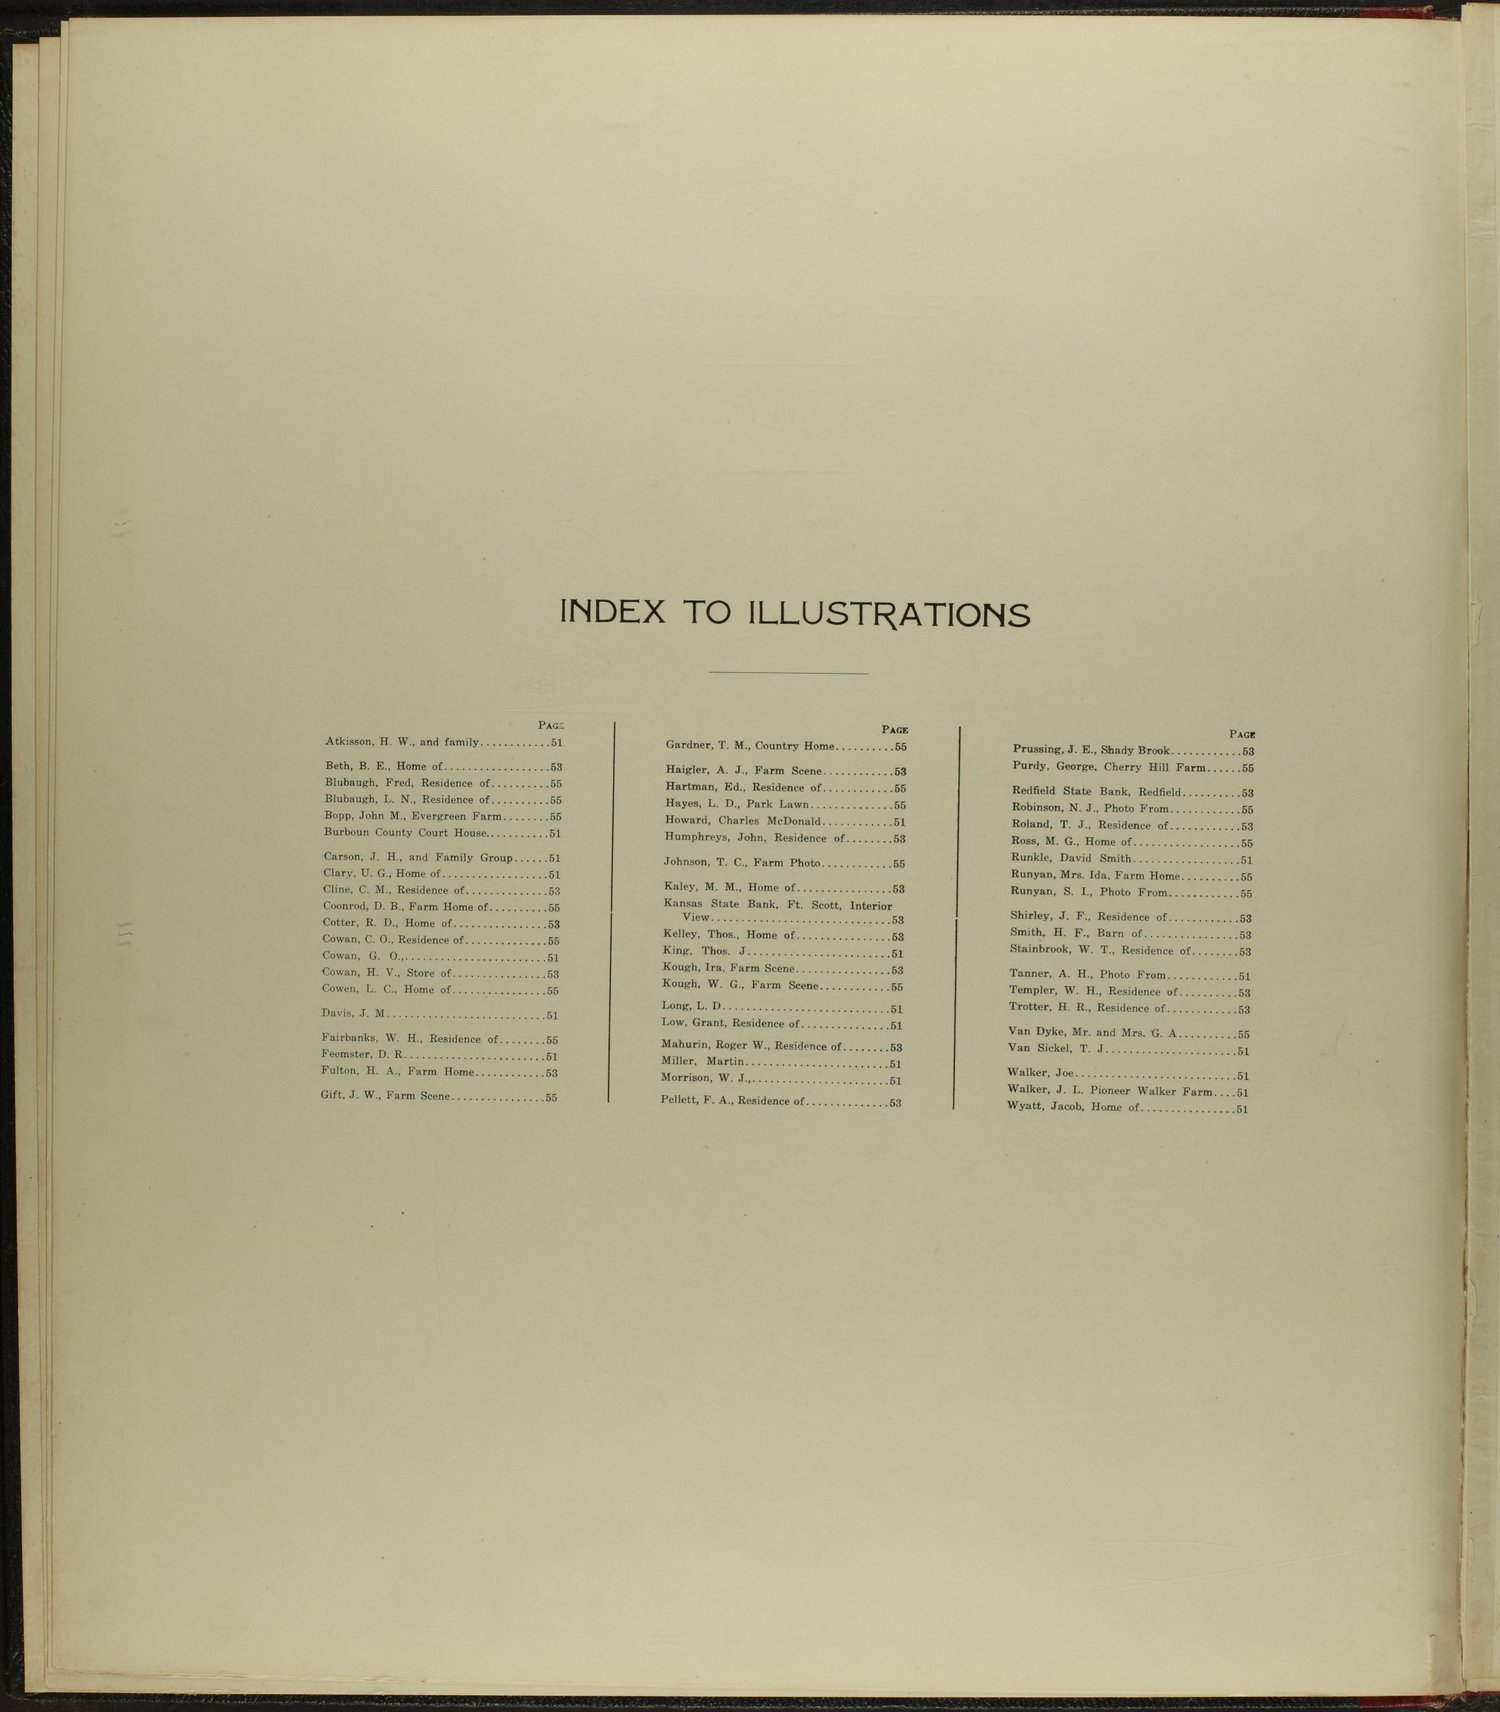 Standard atlas of Bourbon County, Kansas - Index to Illustrations